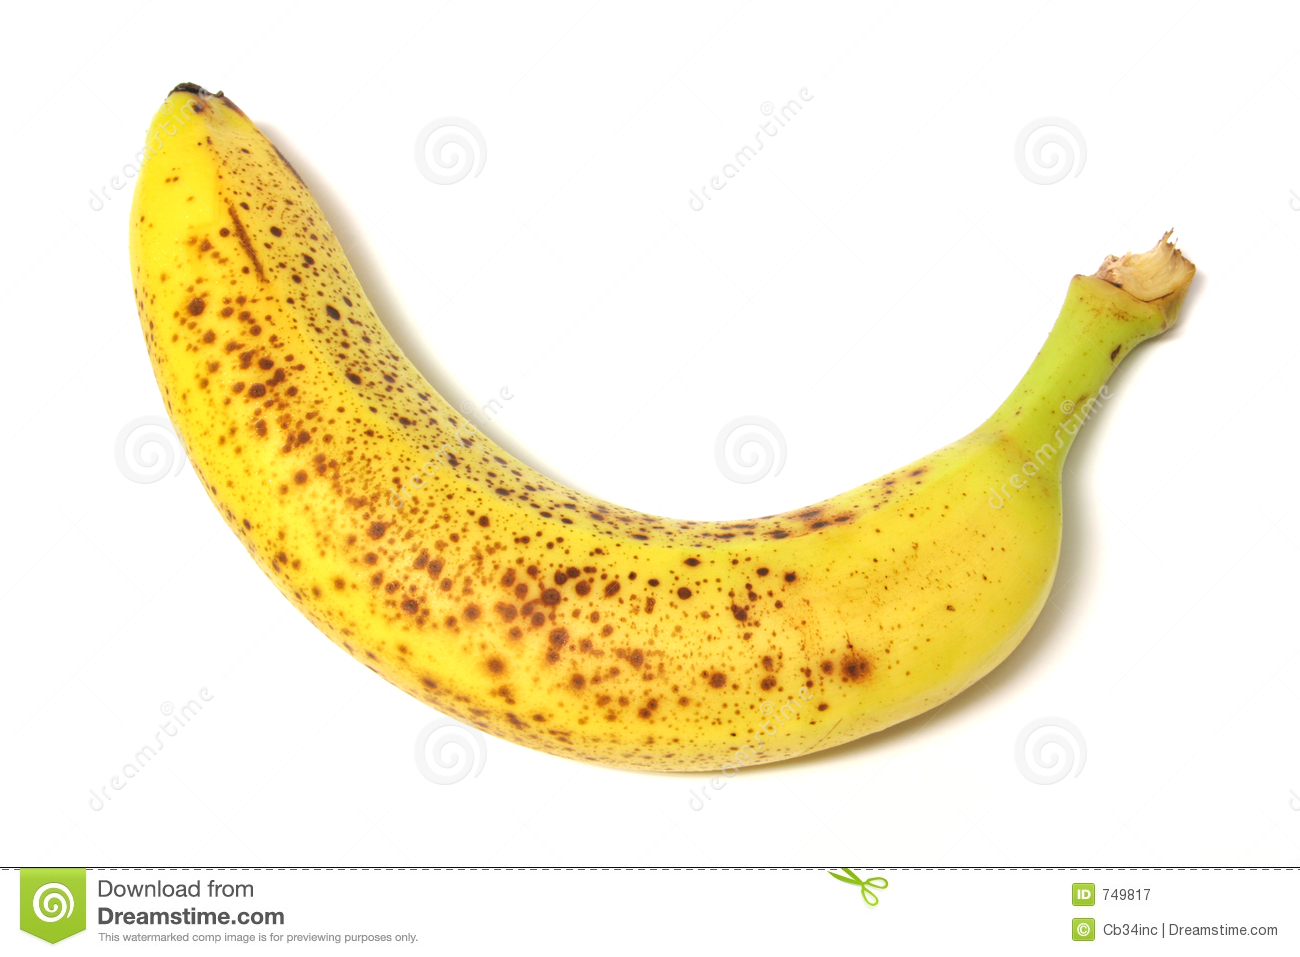 Rotten Banana 1 Royalty Free Stock Photography - Image: 749817